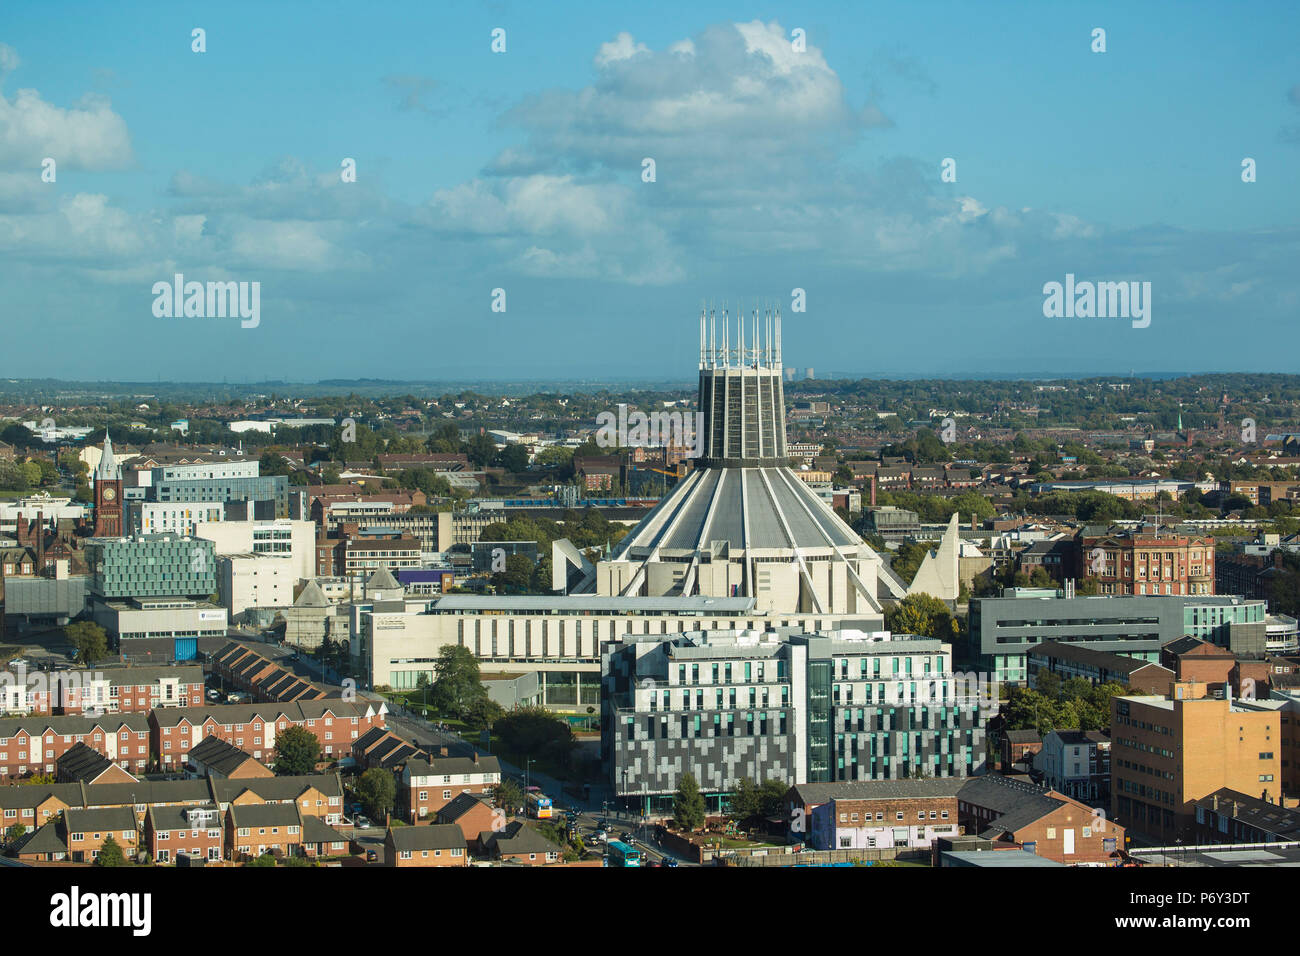 England, Merseyside, Liverpool, View of City looking towards the  Metropolitan Cathderal - Stock Image